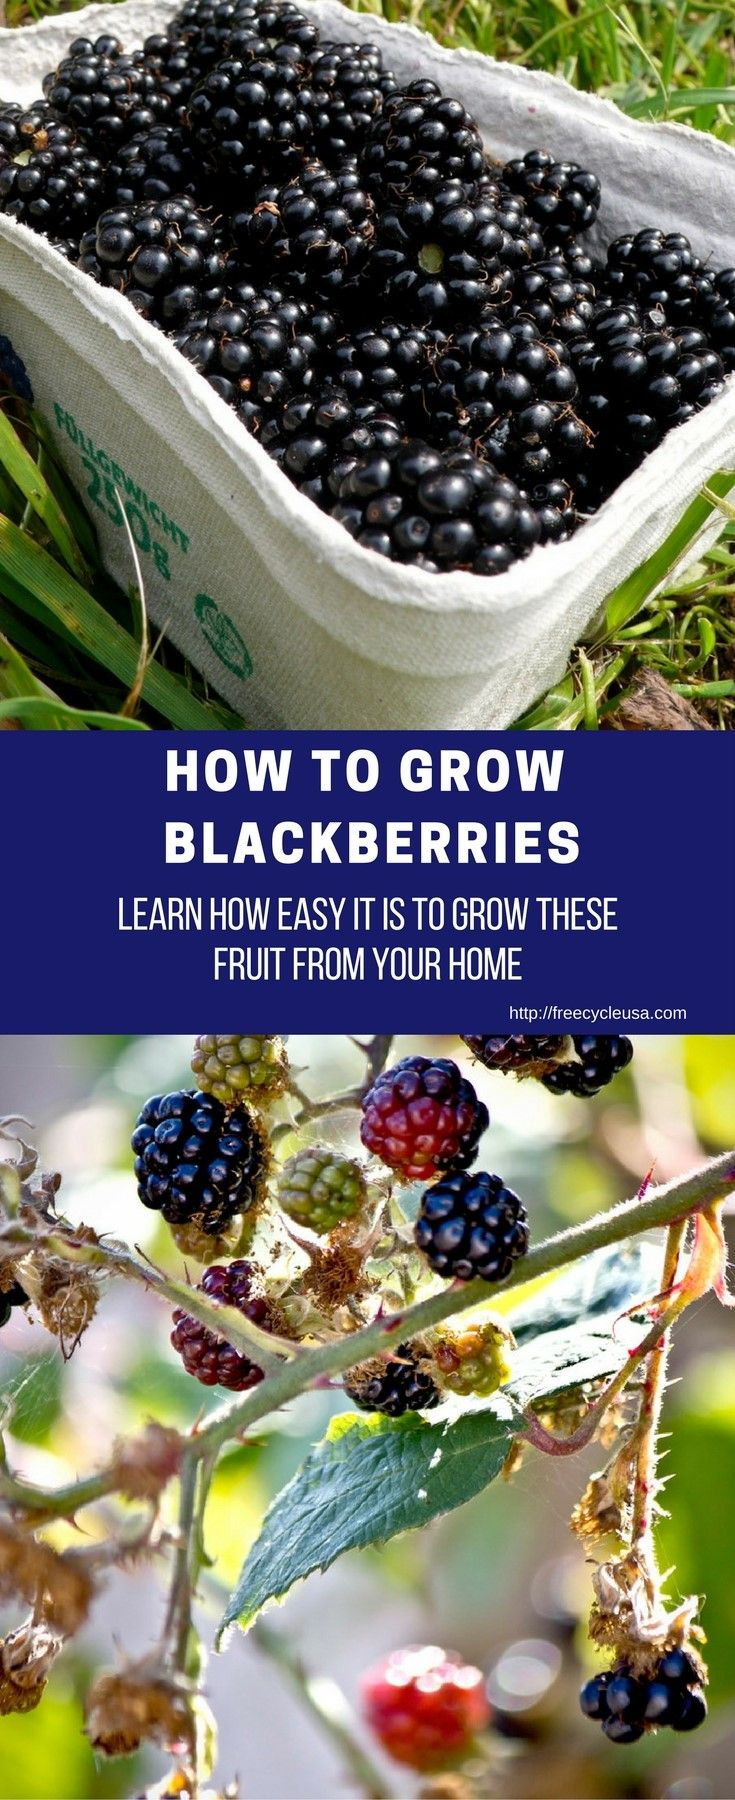 DIY HOW TO GROW BLACKBERRIES - http://www.freecycleusa.com/diy-grow-blackberries/